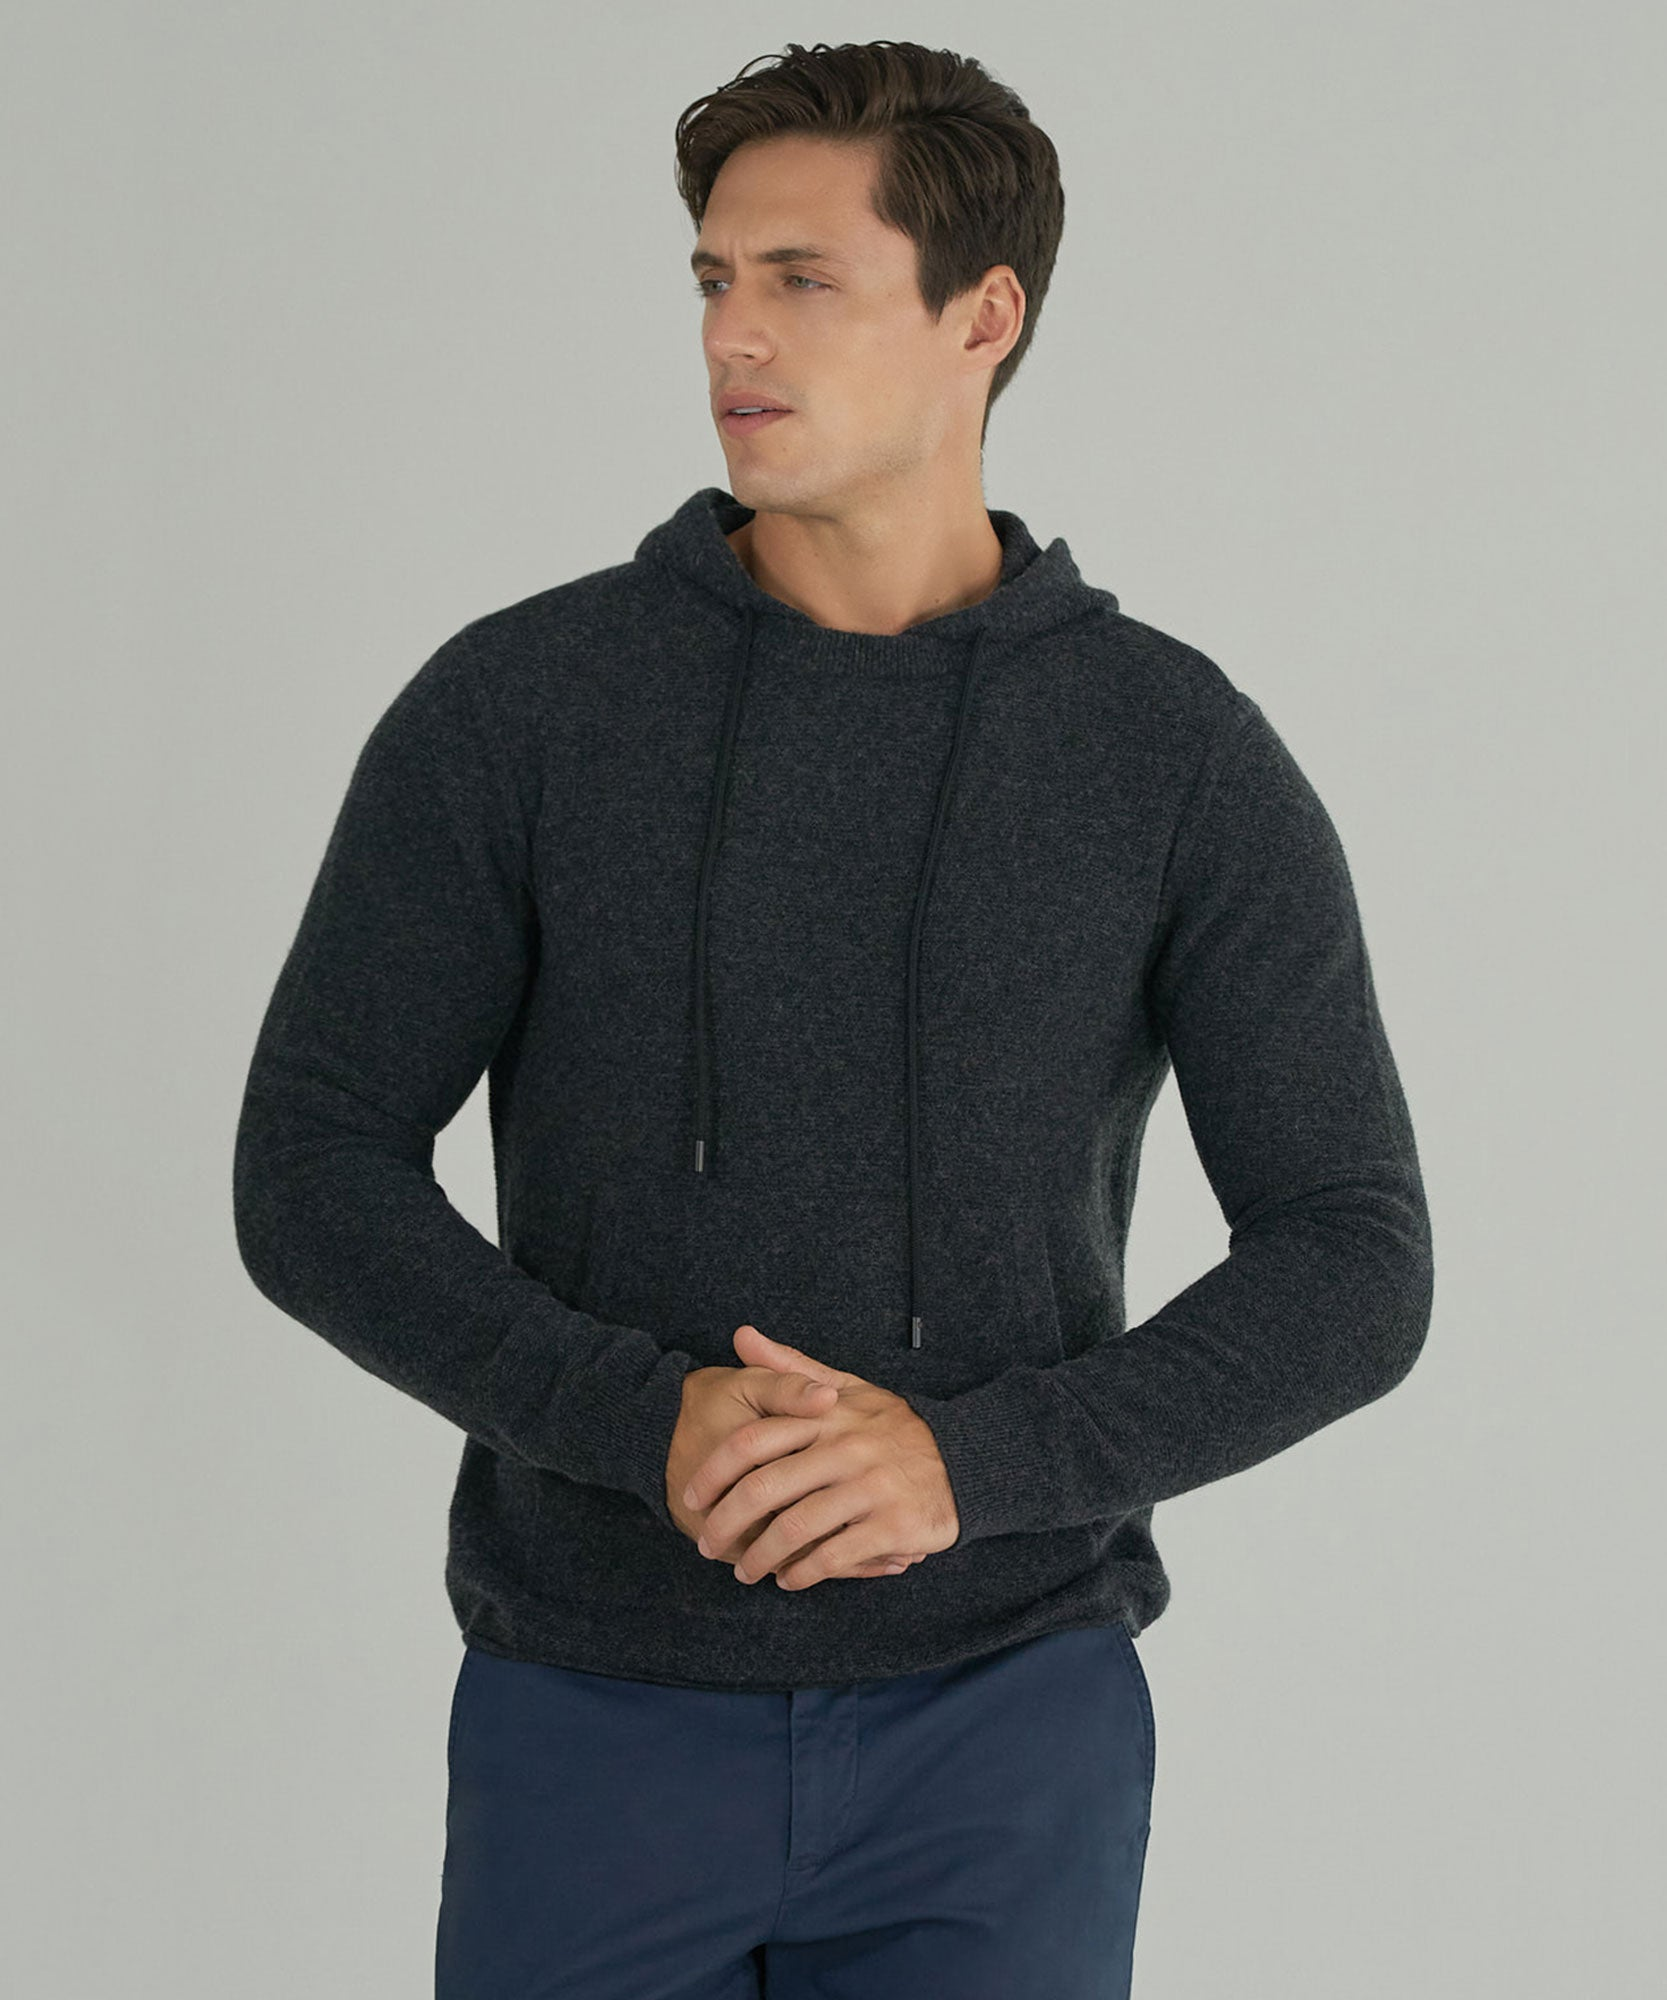 Charcoal Cashmere Blend Hoodie - Men's Sweater by ATM Anthony Thomas Melillo